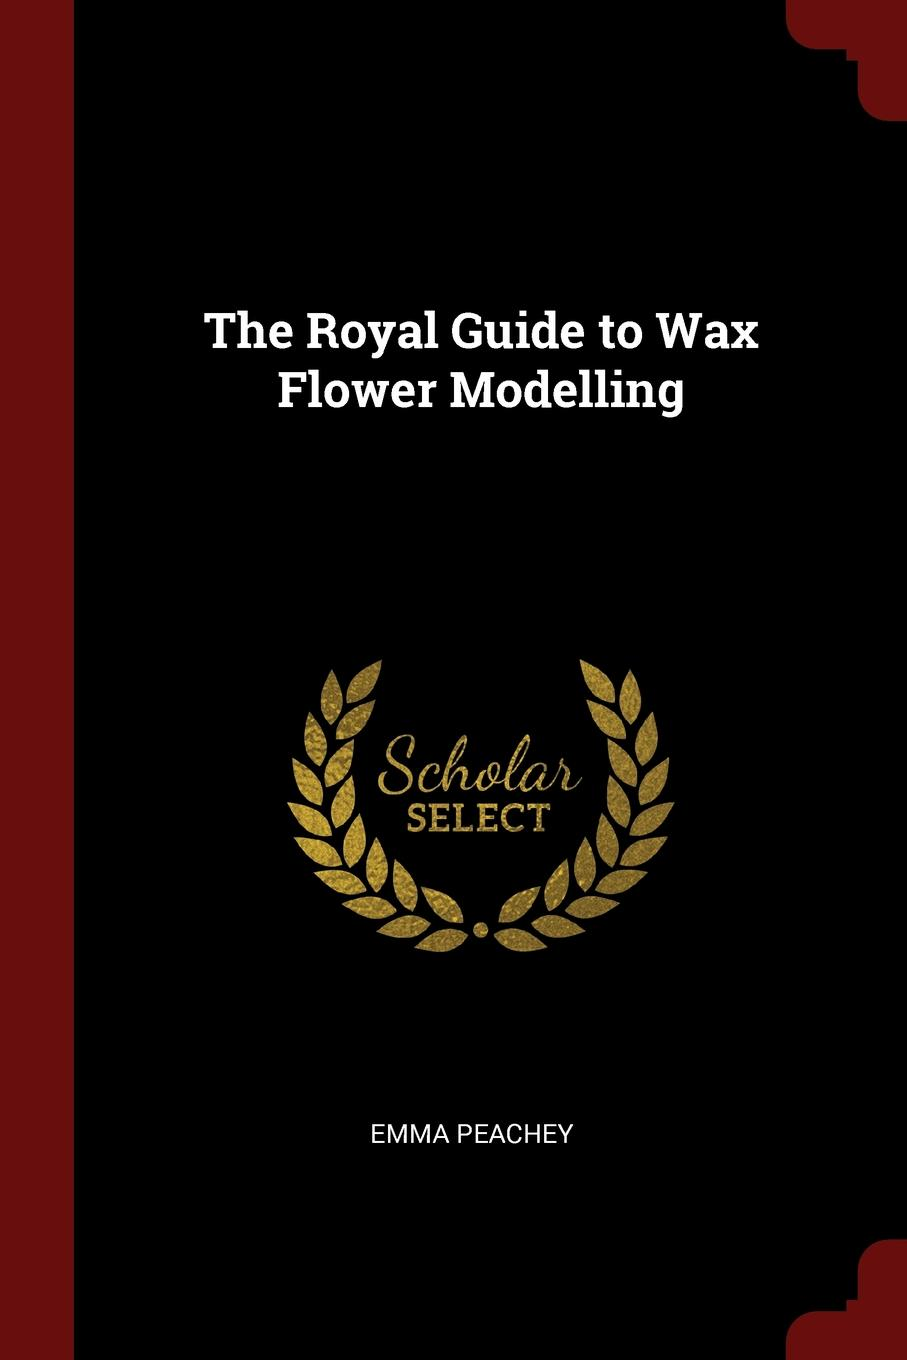 Emma Peachey The Royal Guide to Wax Flower Modelling